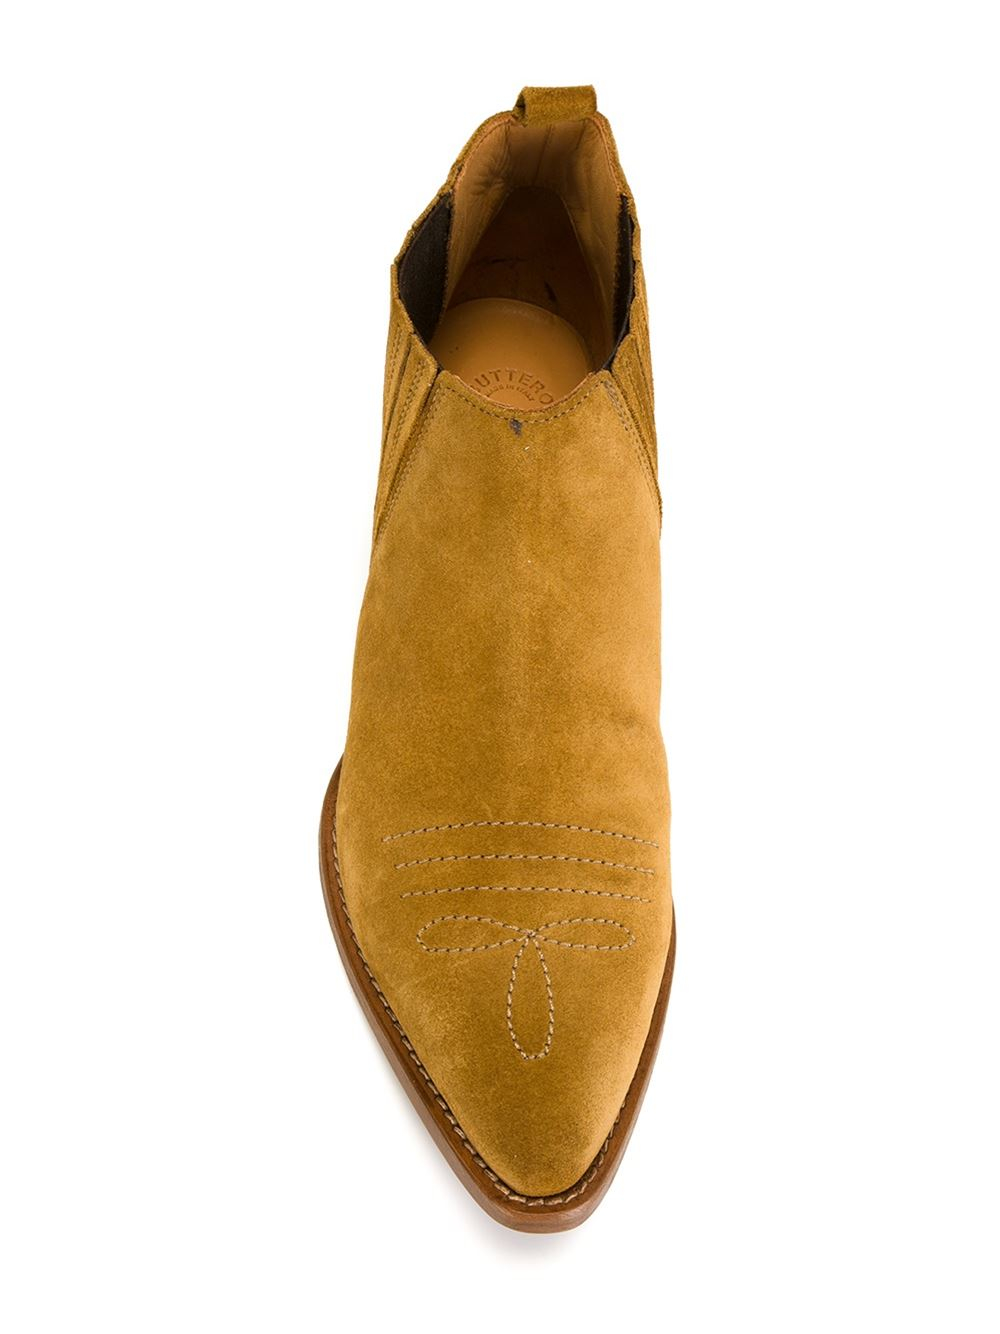 Buttero Leather Texan Booties in Brown